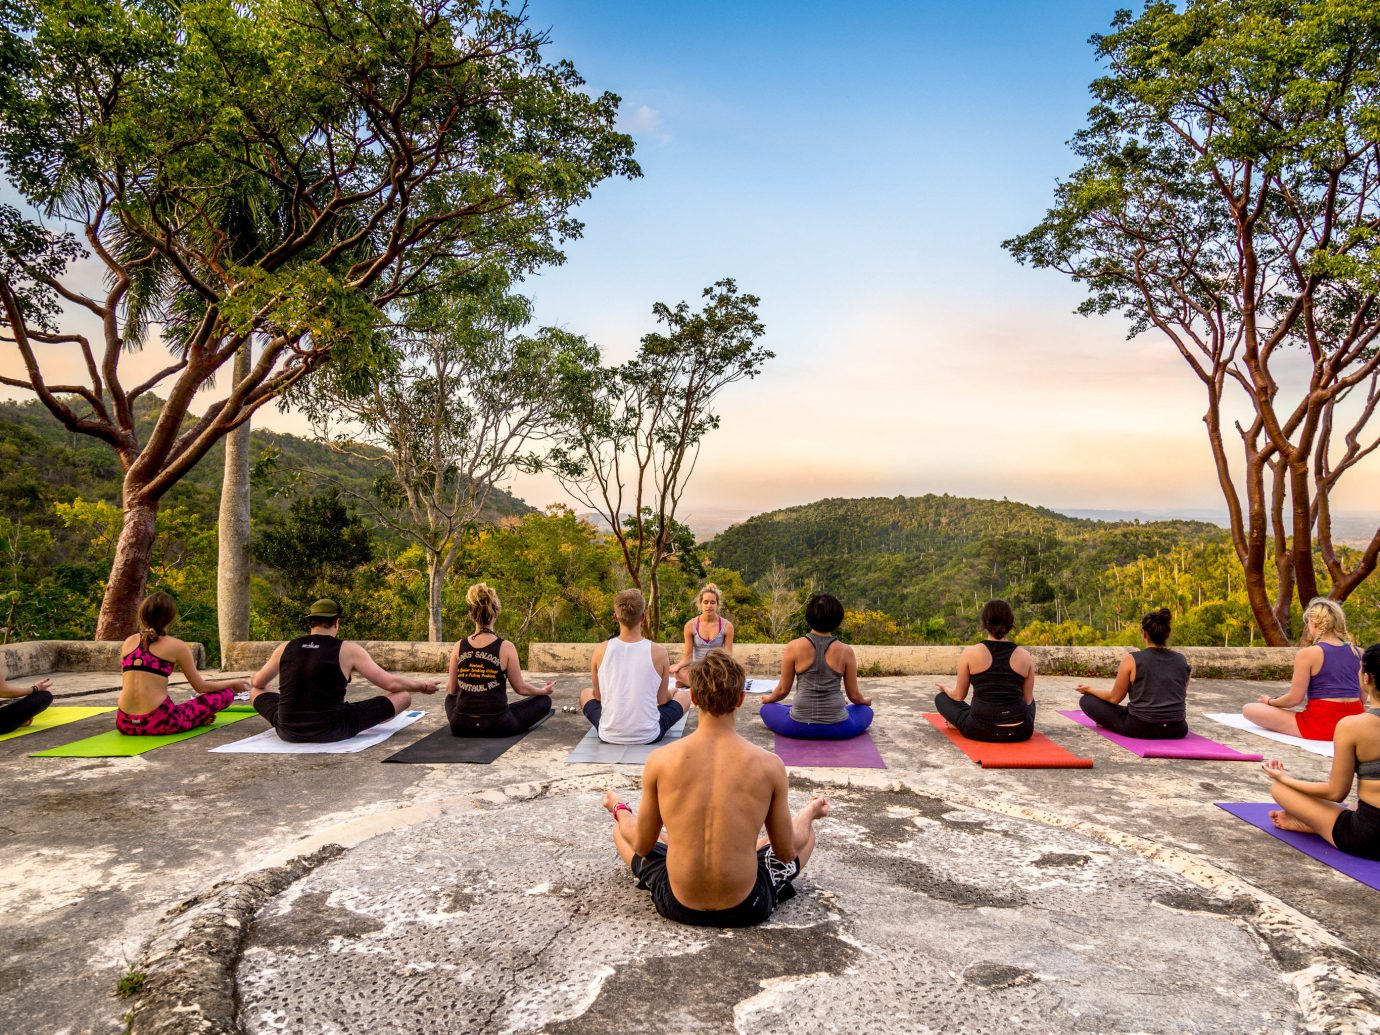 Health + Wellness Meditation Retreats Trip Ideas Yoga Retreats tree outdoor sky leisure physical fitness yoga